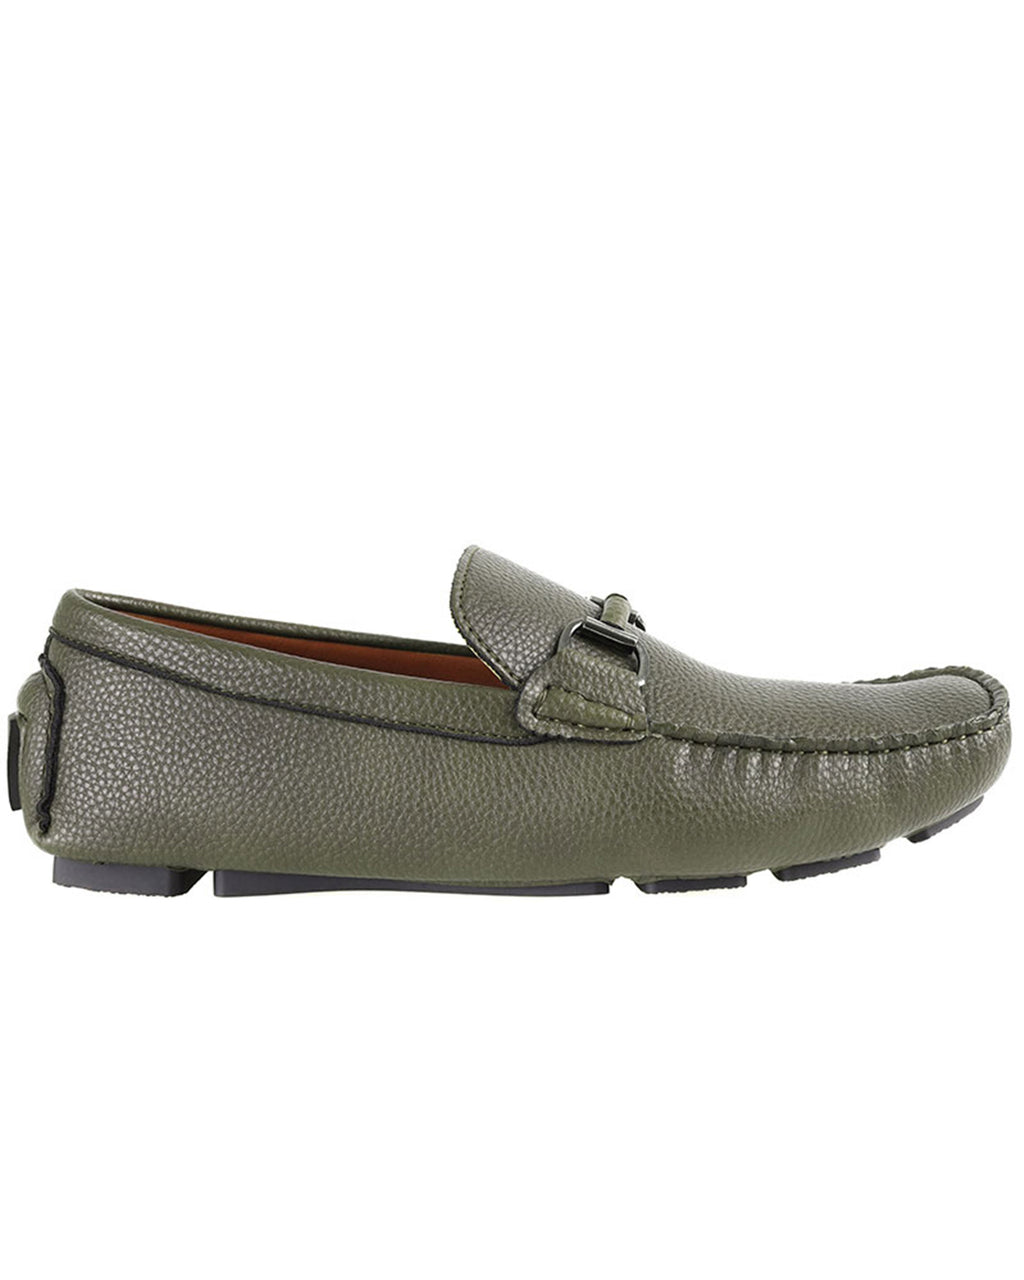 Tomaz C446 Buckle Moccasins (Green)